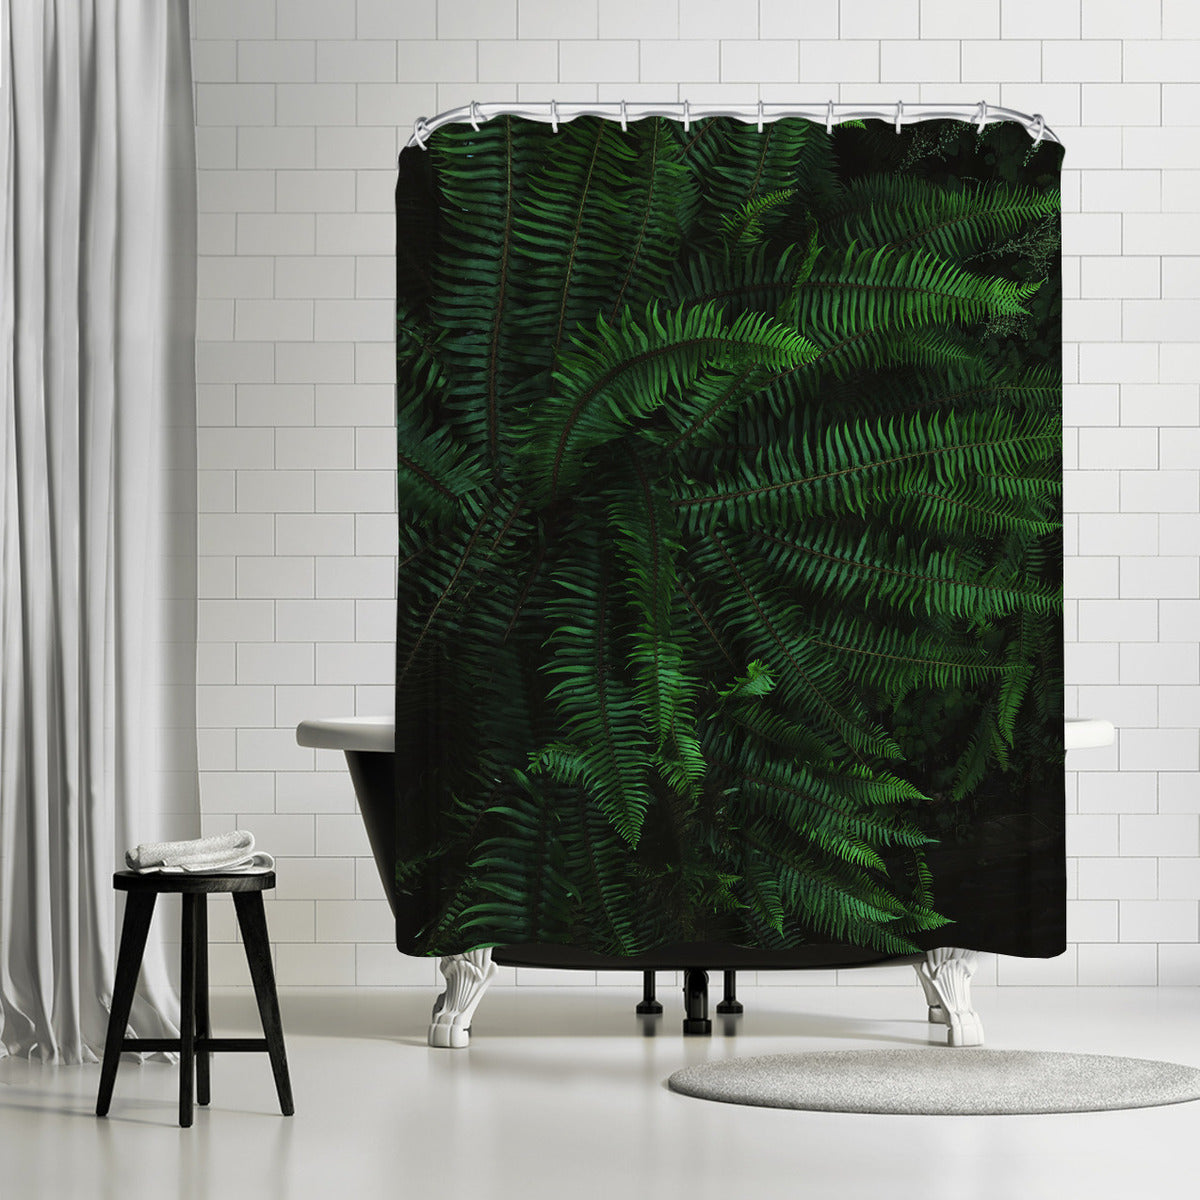 Fern Life by Leah Flores Shower Curtain - Shower Curtain - Americanflat